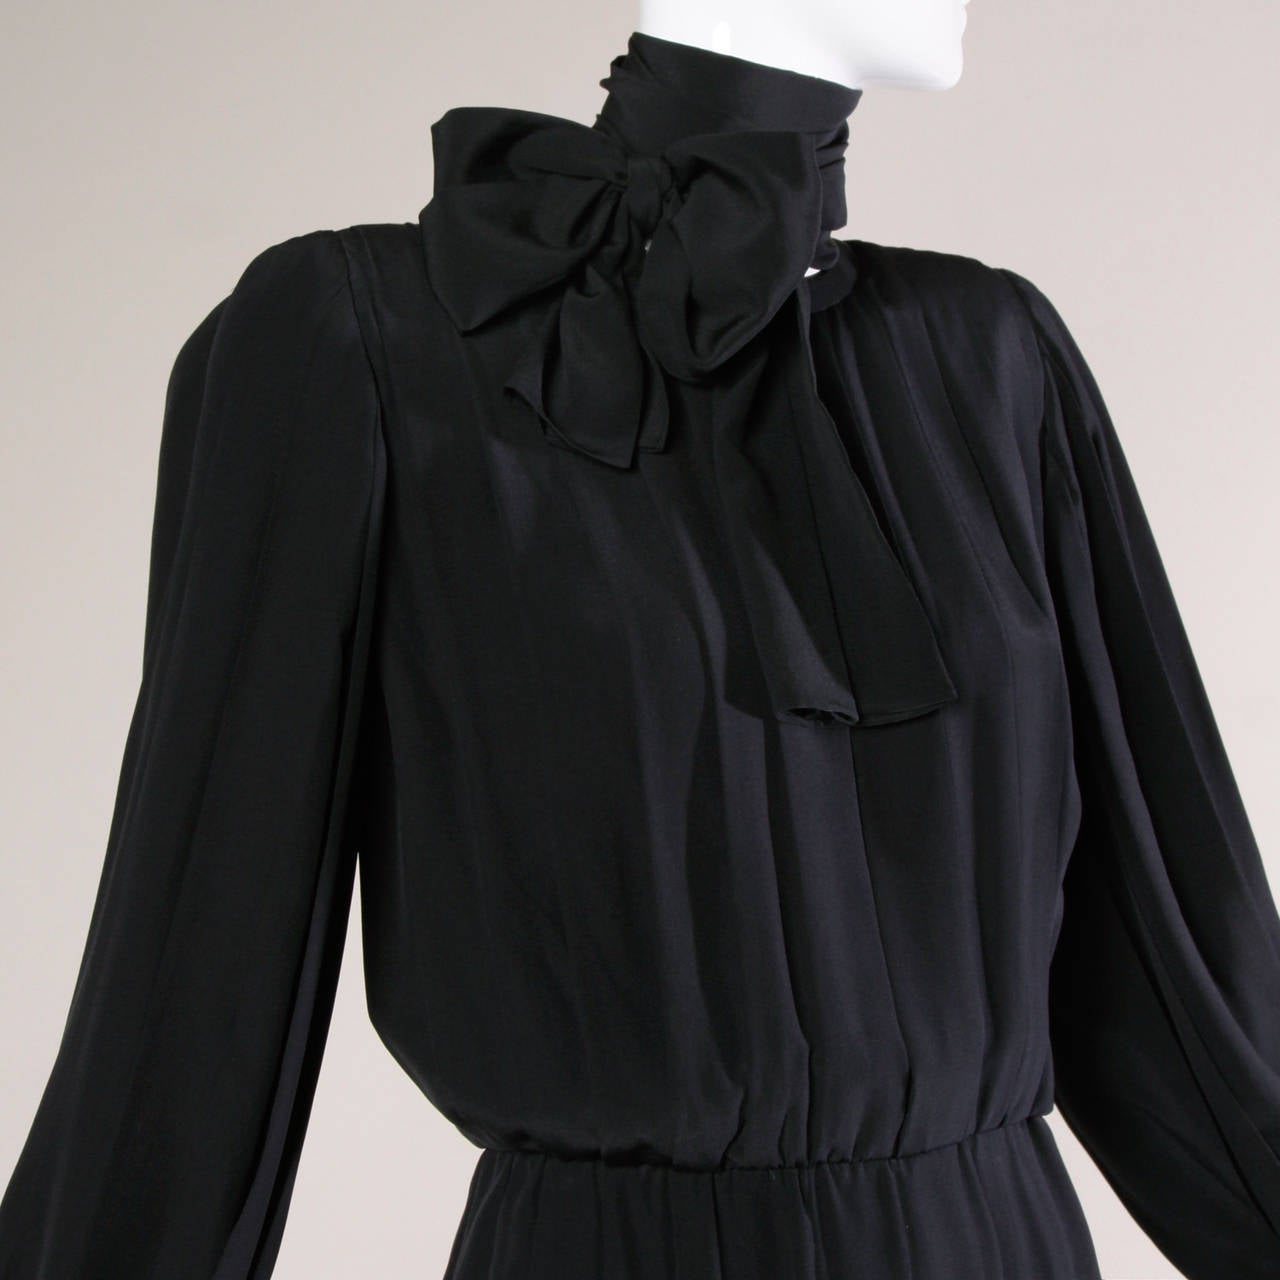 1980s Andre Laug Vintage Black Silk Dress with Matching Sash Belt For Sale 2